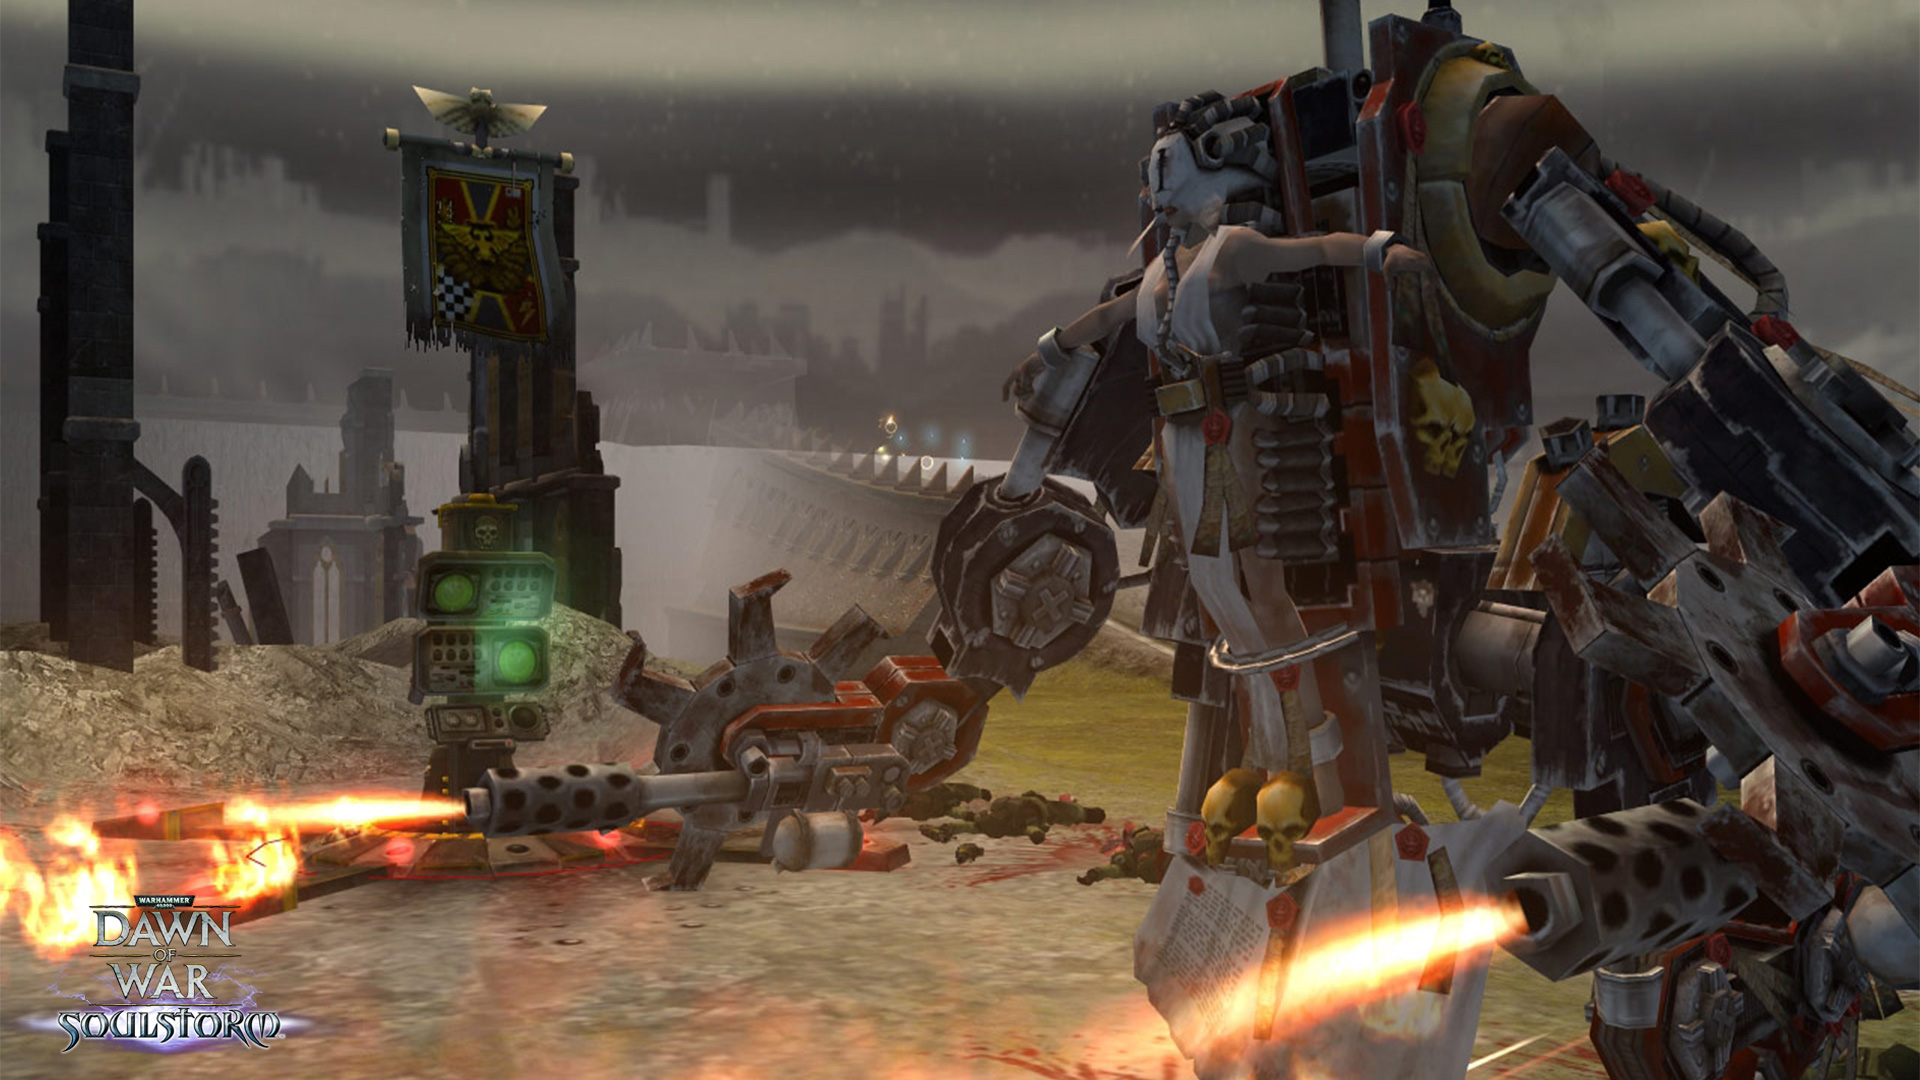 Warhammer 40,000: Dawn of War - Soulstorm screenshot